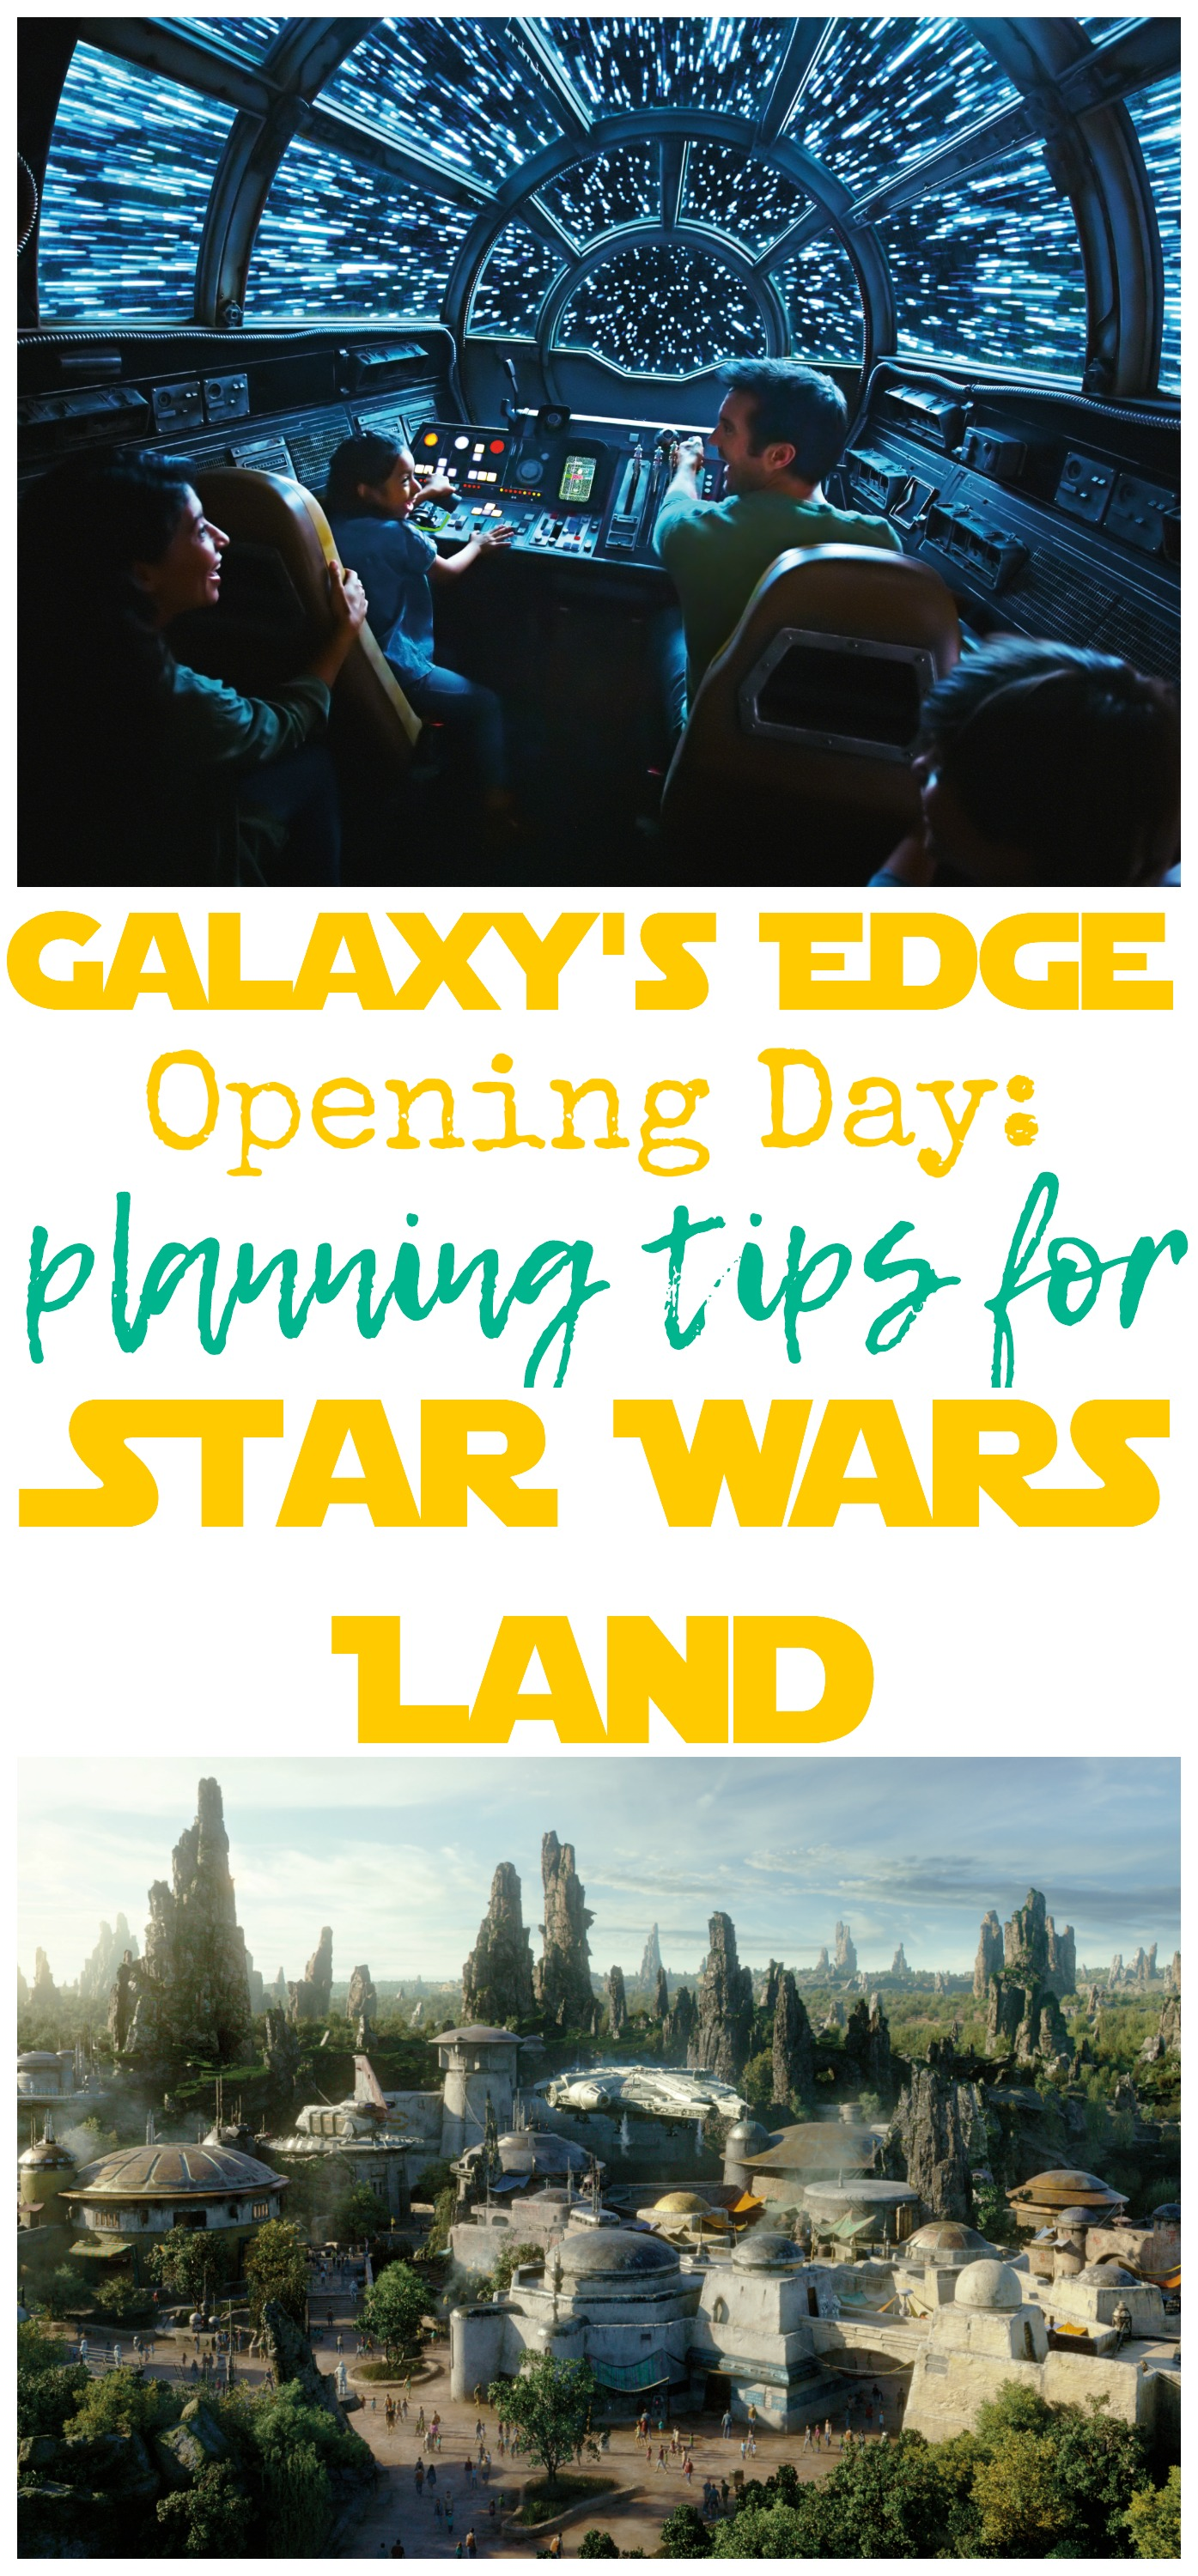 Galaxy's Edge Opening Day, Star Wars Land Opening Day, Planning Tips for Galaxy's Edge, Tips for Star Wars Galaxy's Edge, Galaxy's Edge Tips, #GalaxysEdge #DisneySMC #NowMoreThanEver #DisneyParks #StarWars #StarWarsLand #Disneyland #HollywoodStudios #DisneyFamily